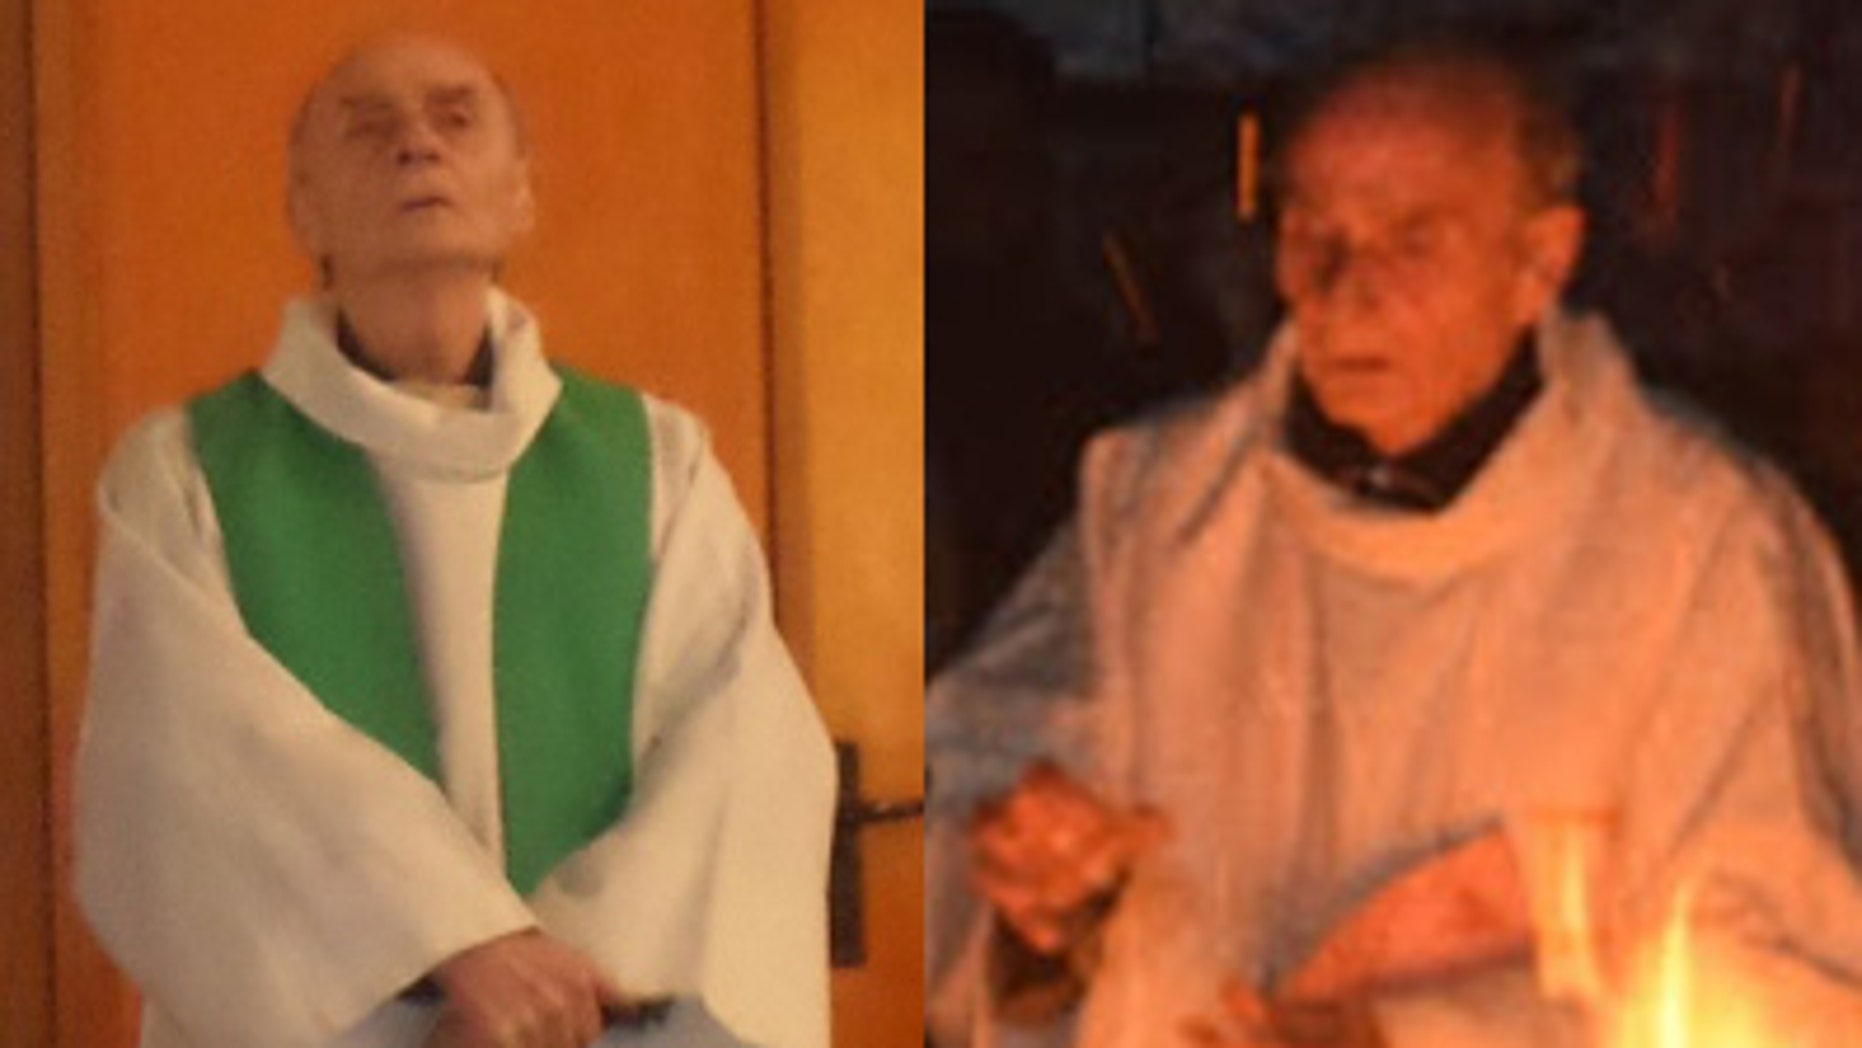 Priest Jacques Hamel was killed in a terror attack on a France church.